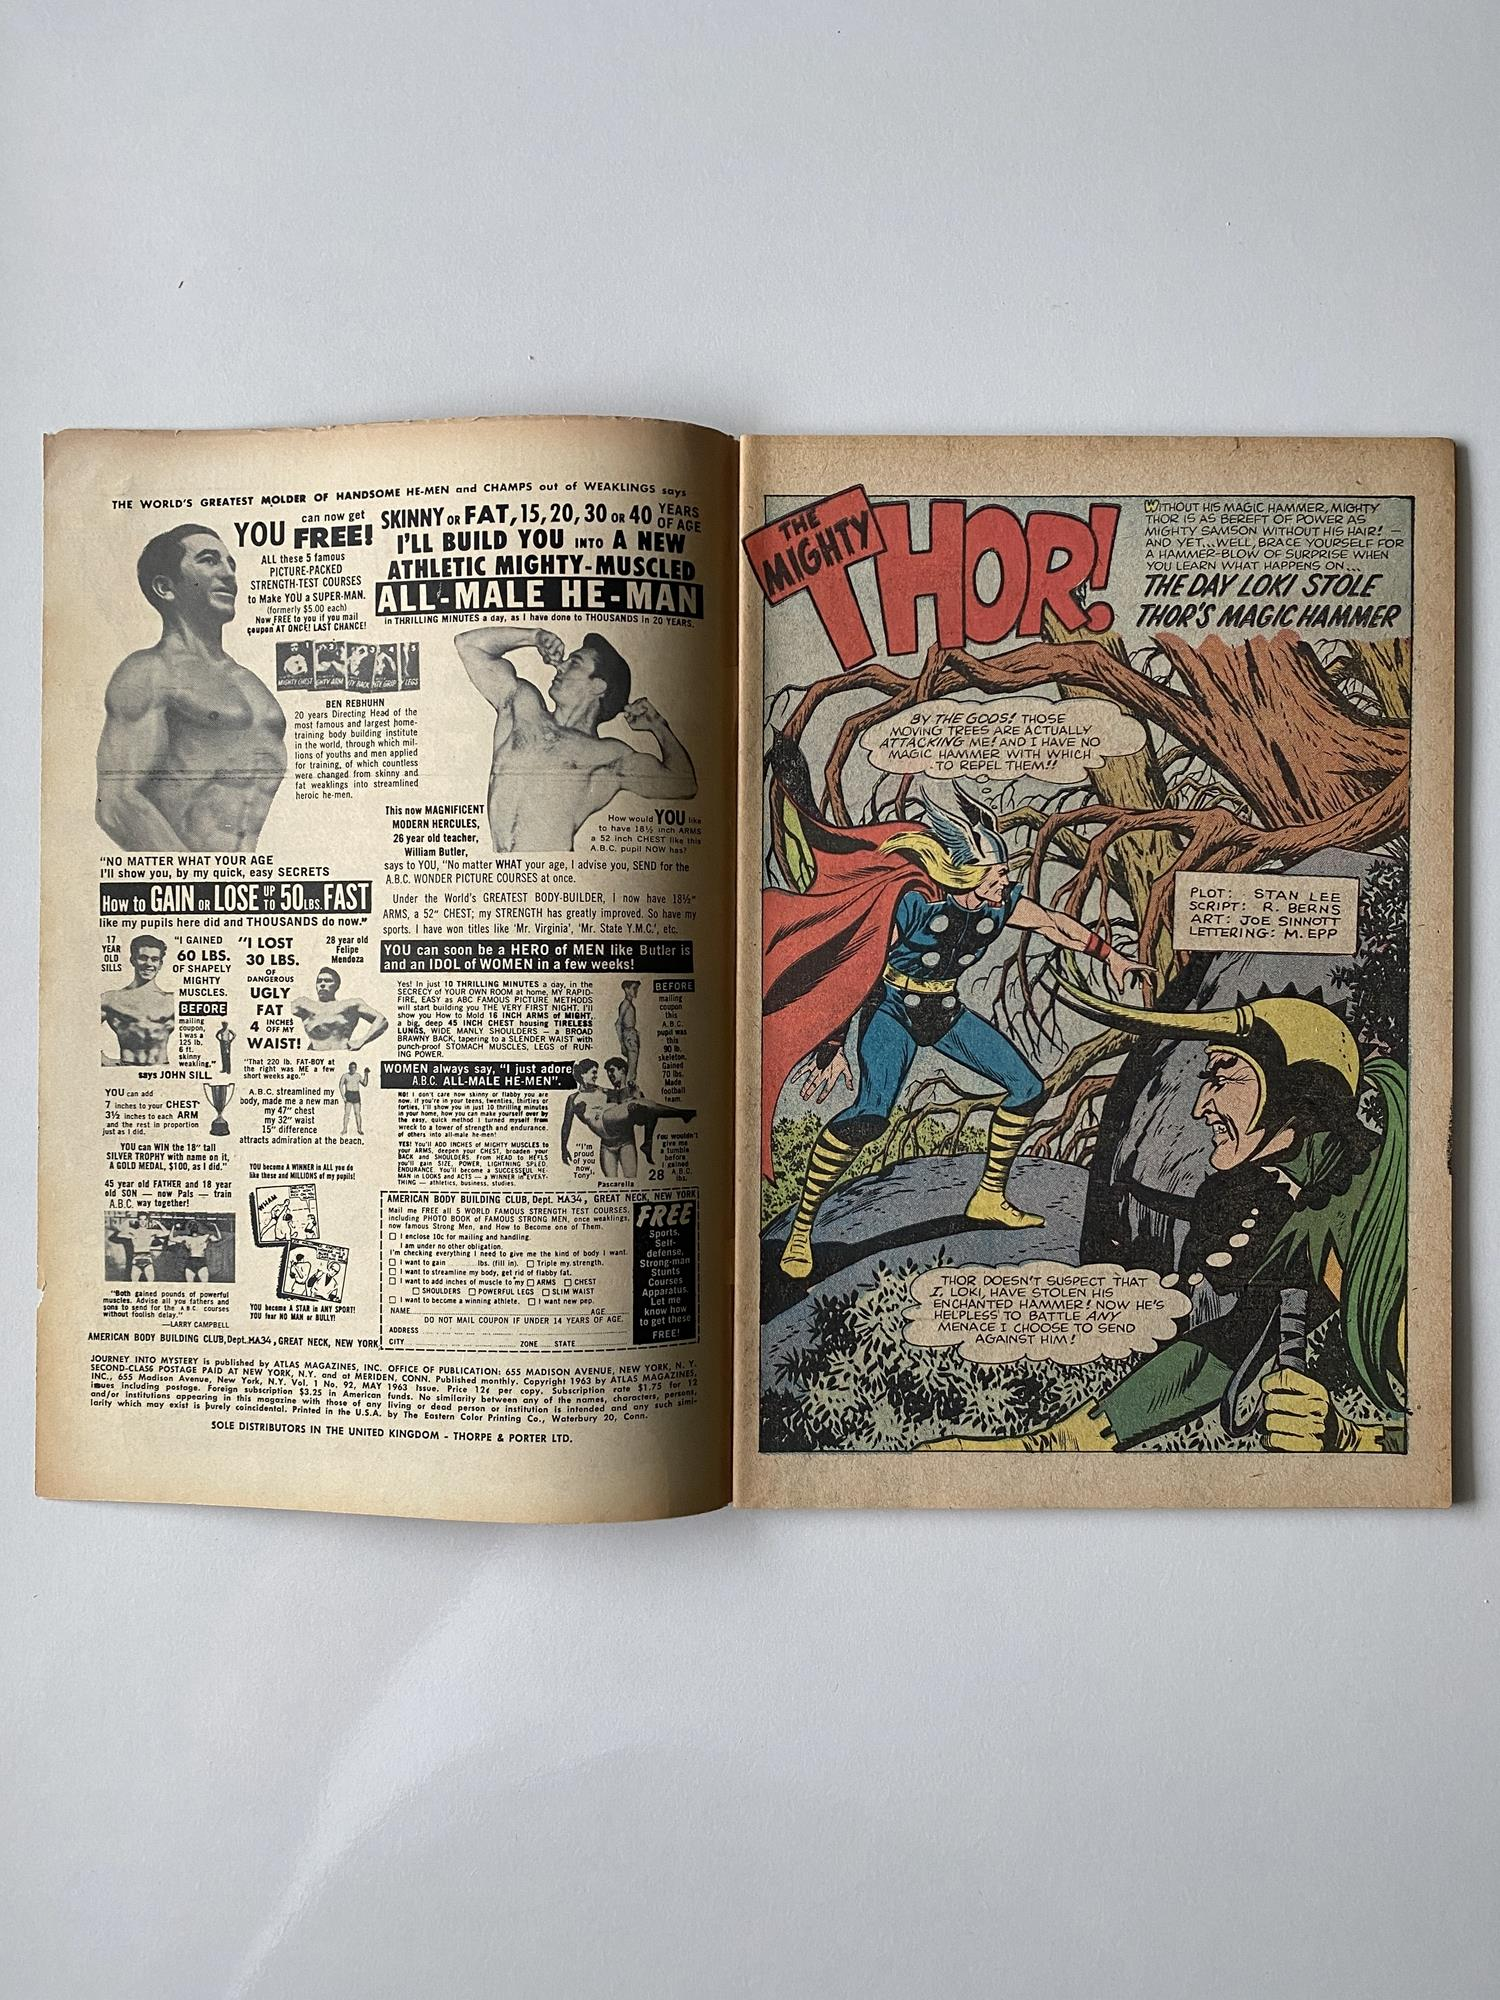 Lot 3 - JOURNEY INTO MYSTERY # 92 - (1963 - MARVEL - Pence Copy) - Thor and Loki cover by Jack Kirby + Steve